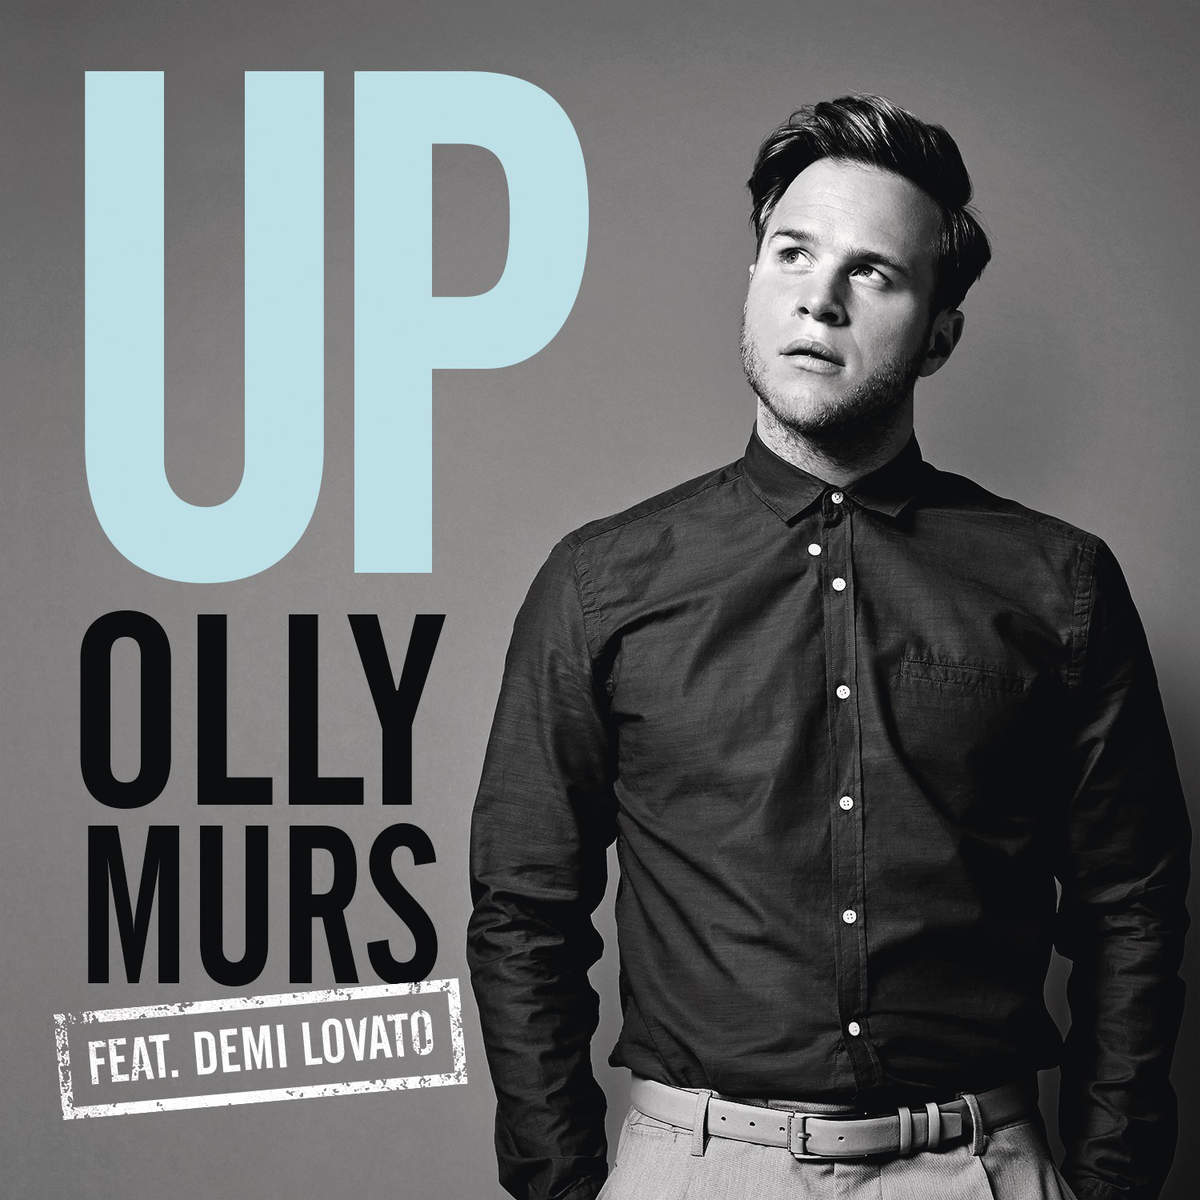 Olly-Murs-Up.png